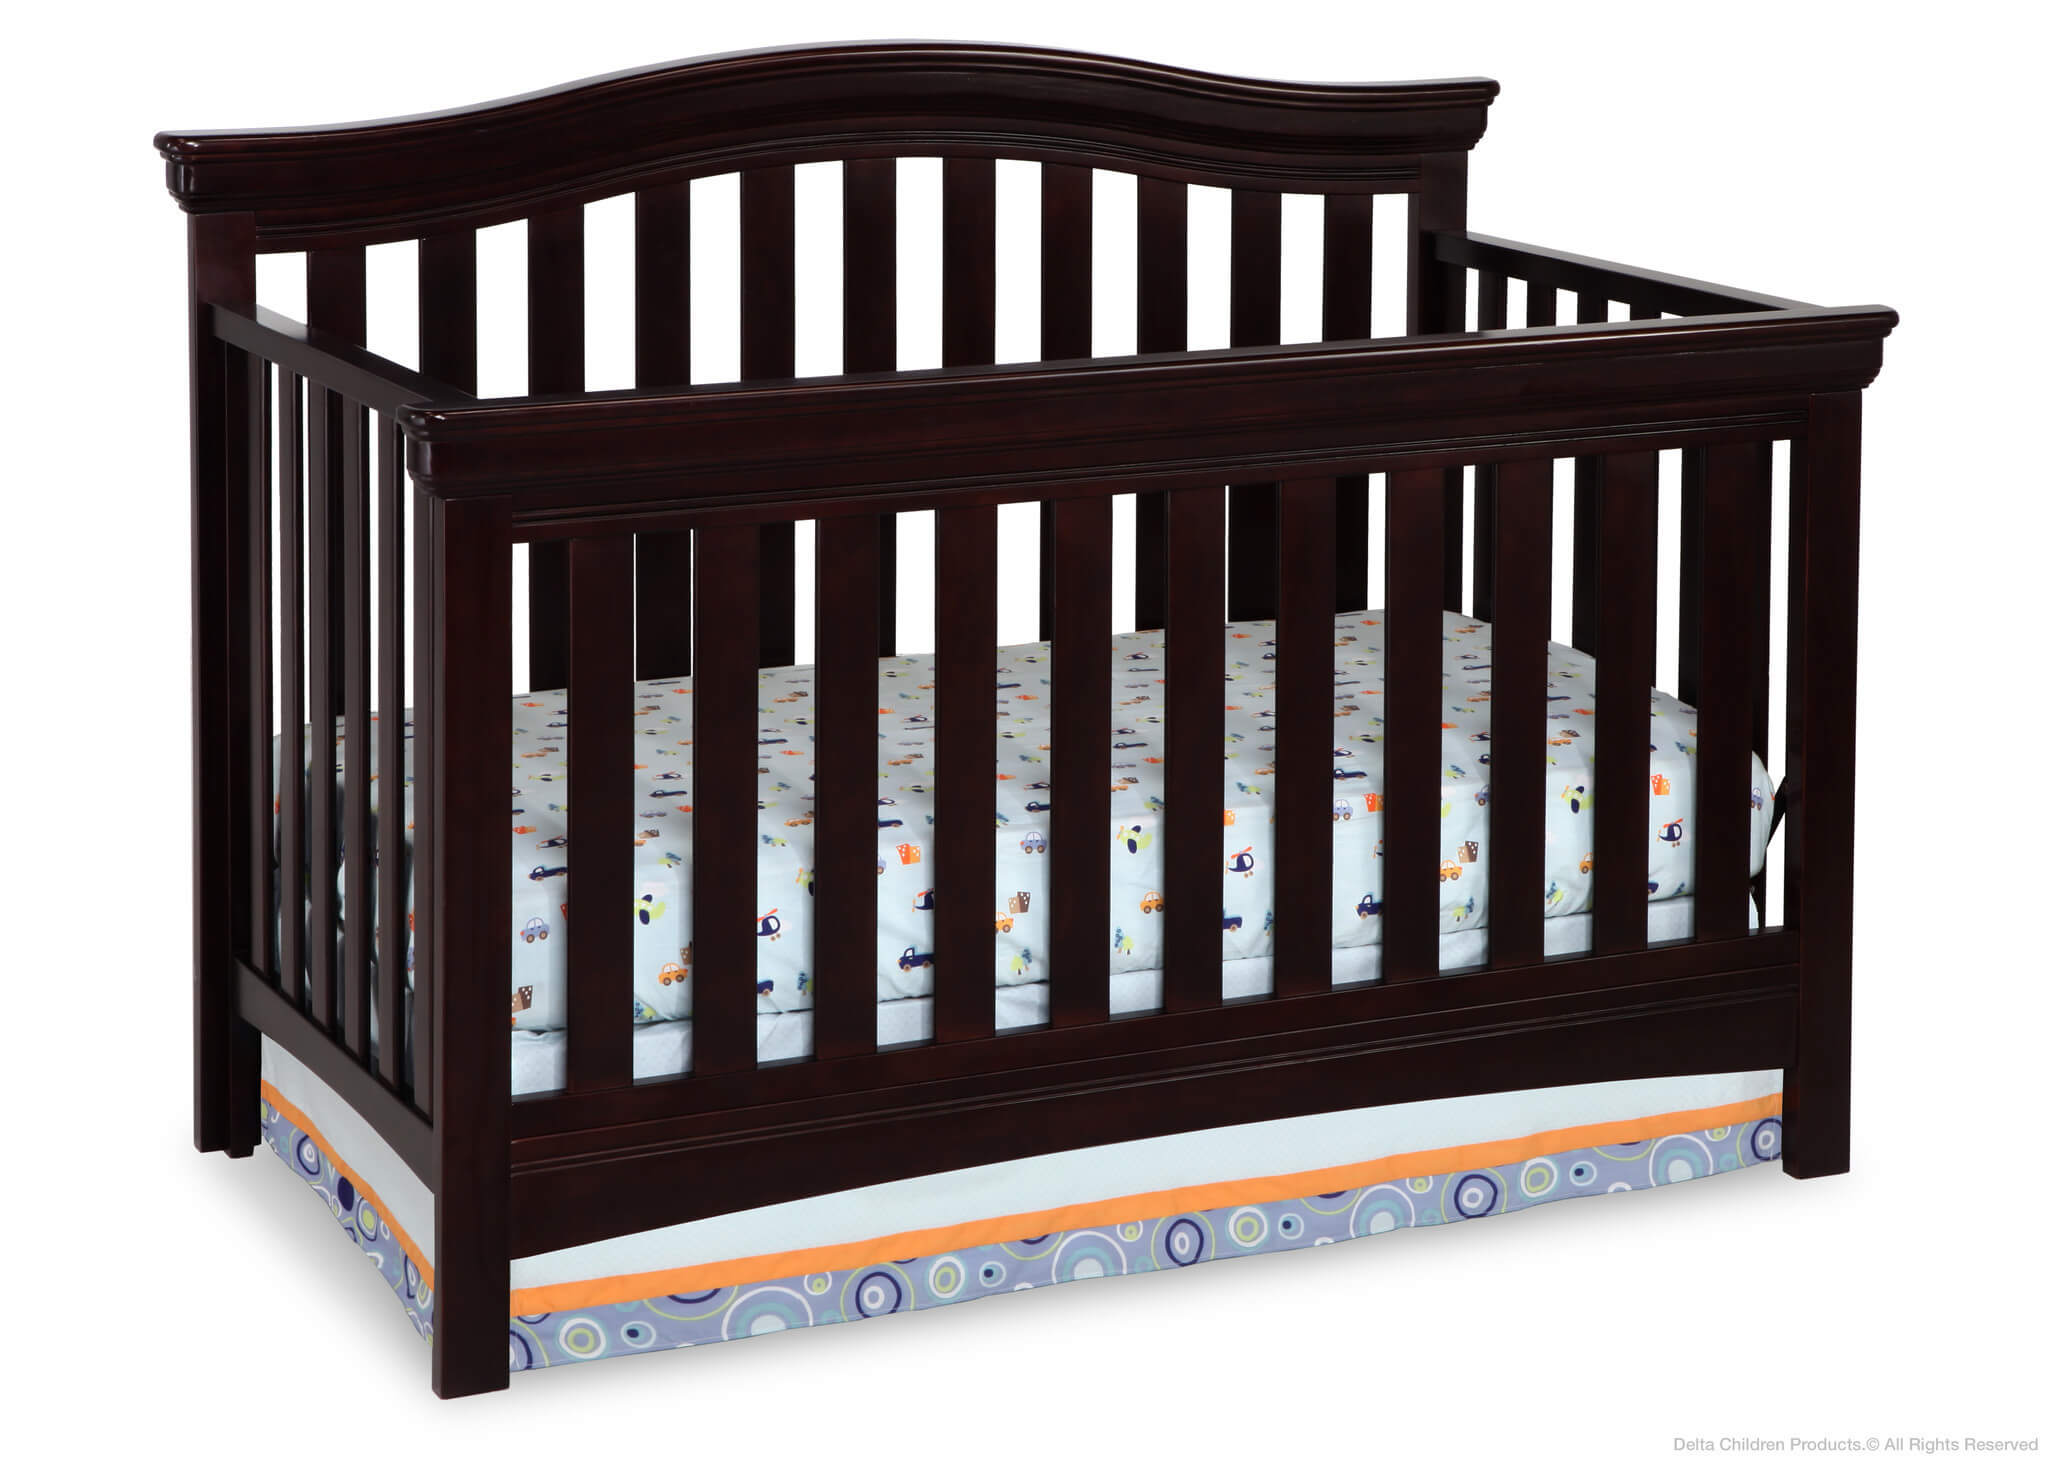 DIY cribs aren't really recommended for child safety